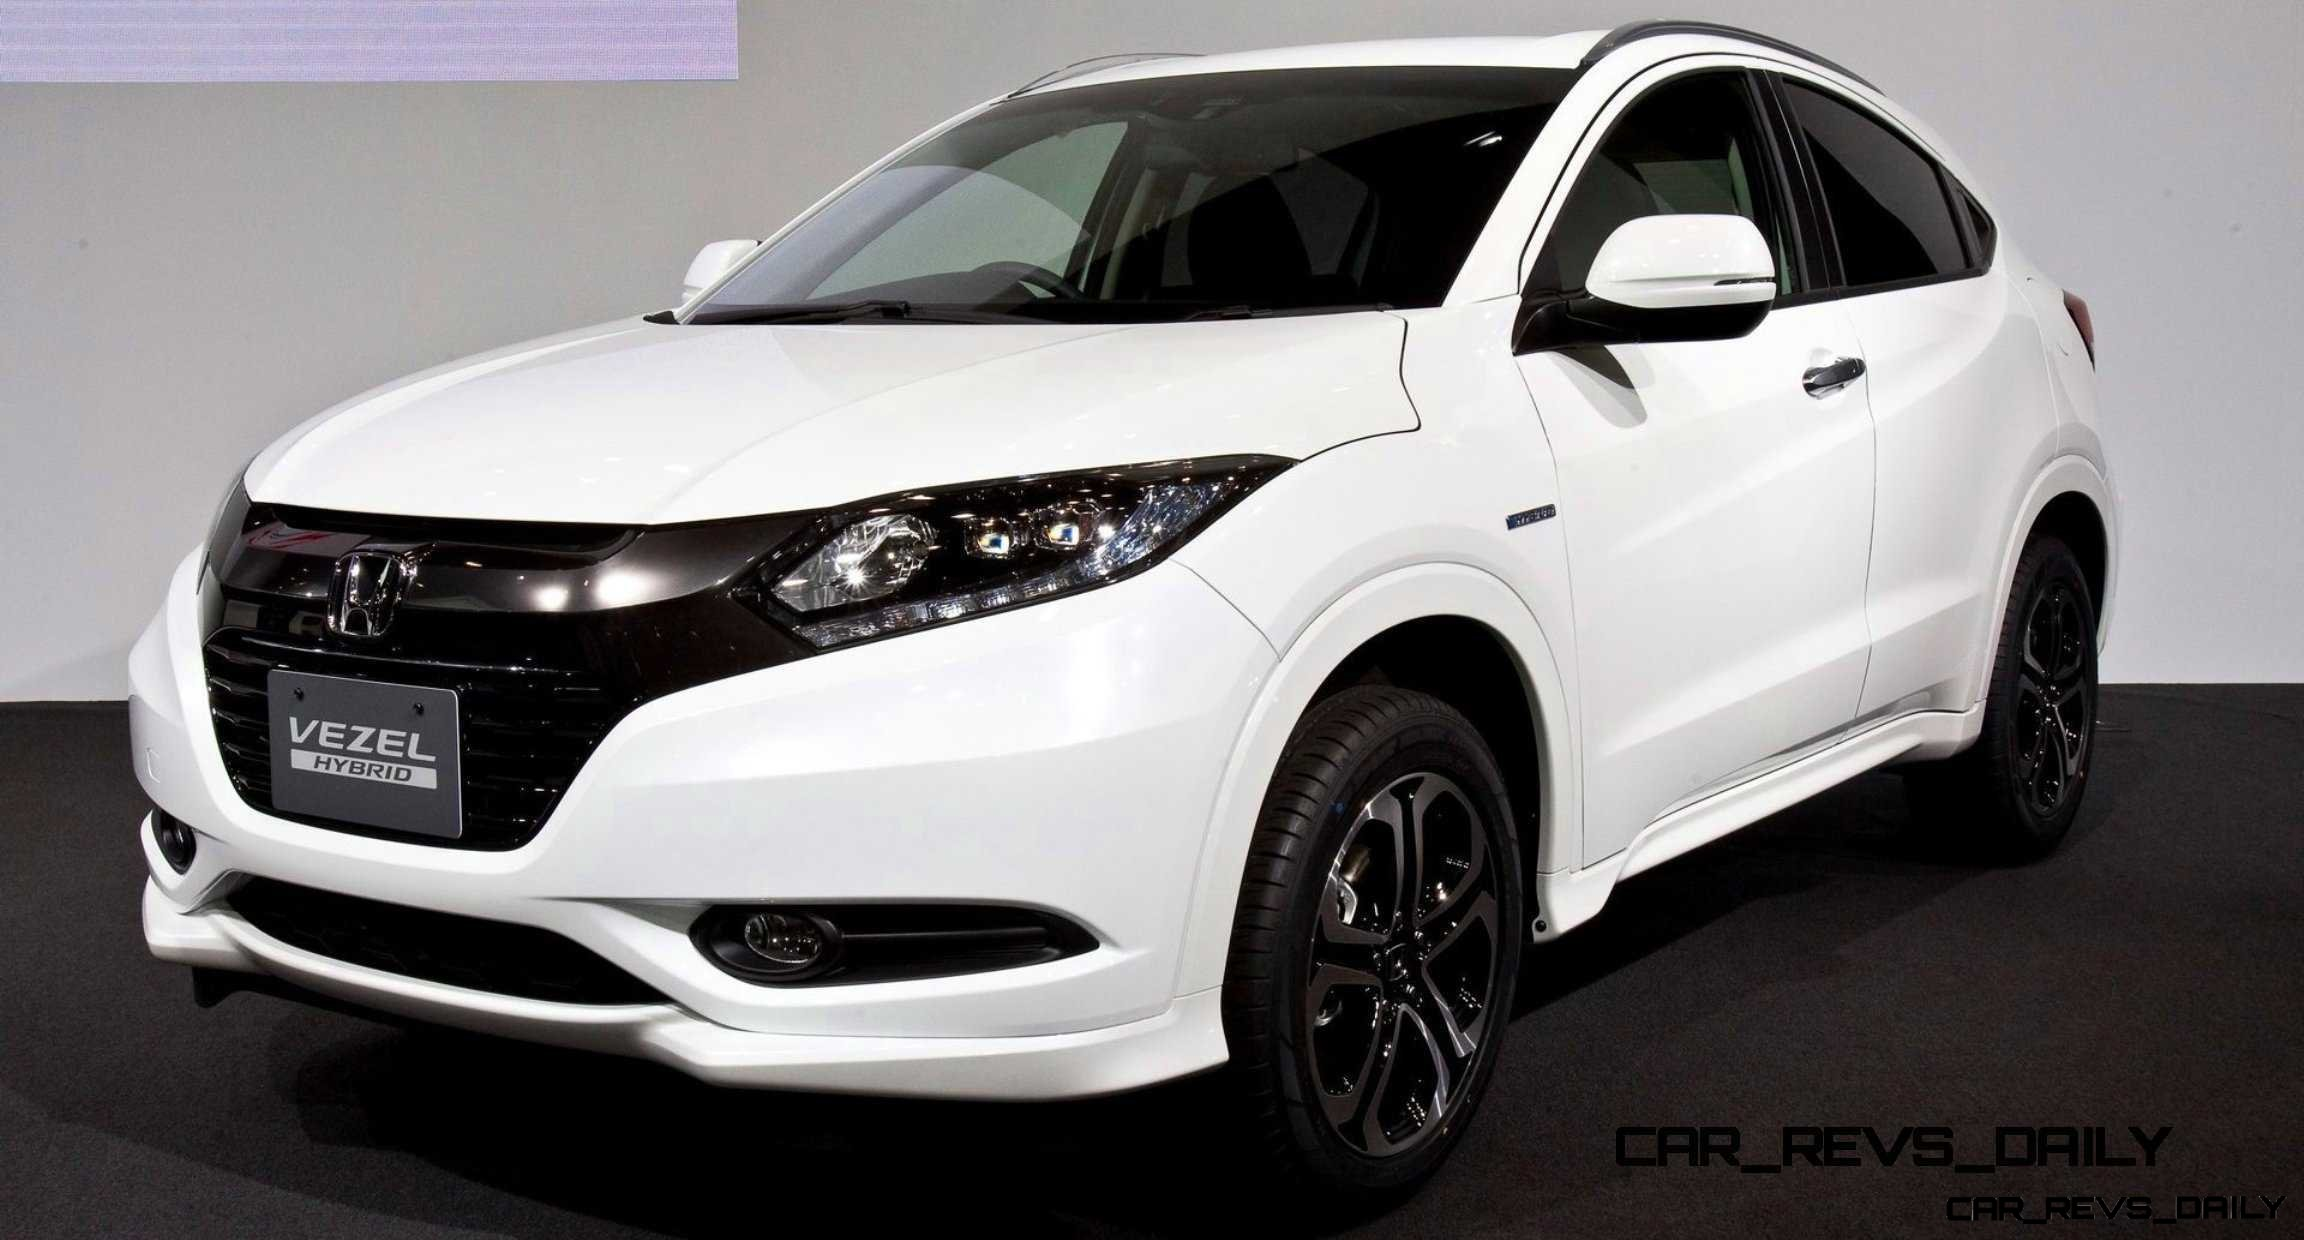 2015 Honda Vezel Hybrid Previews Spring 2014 Civic CUV4